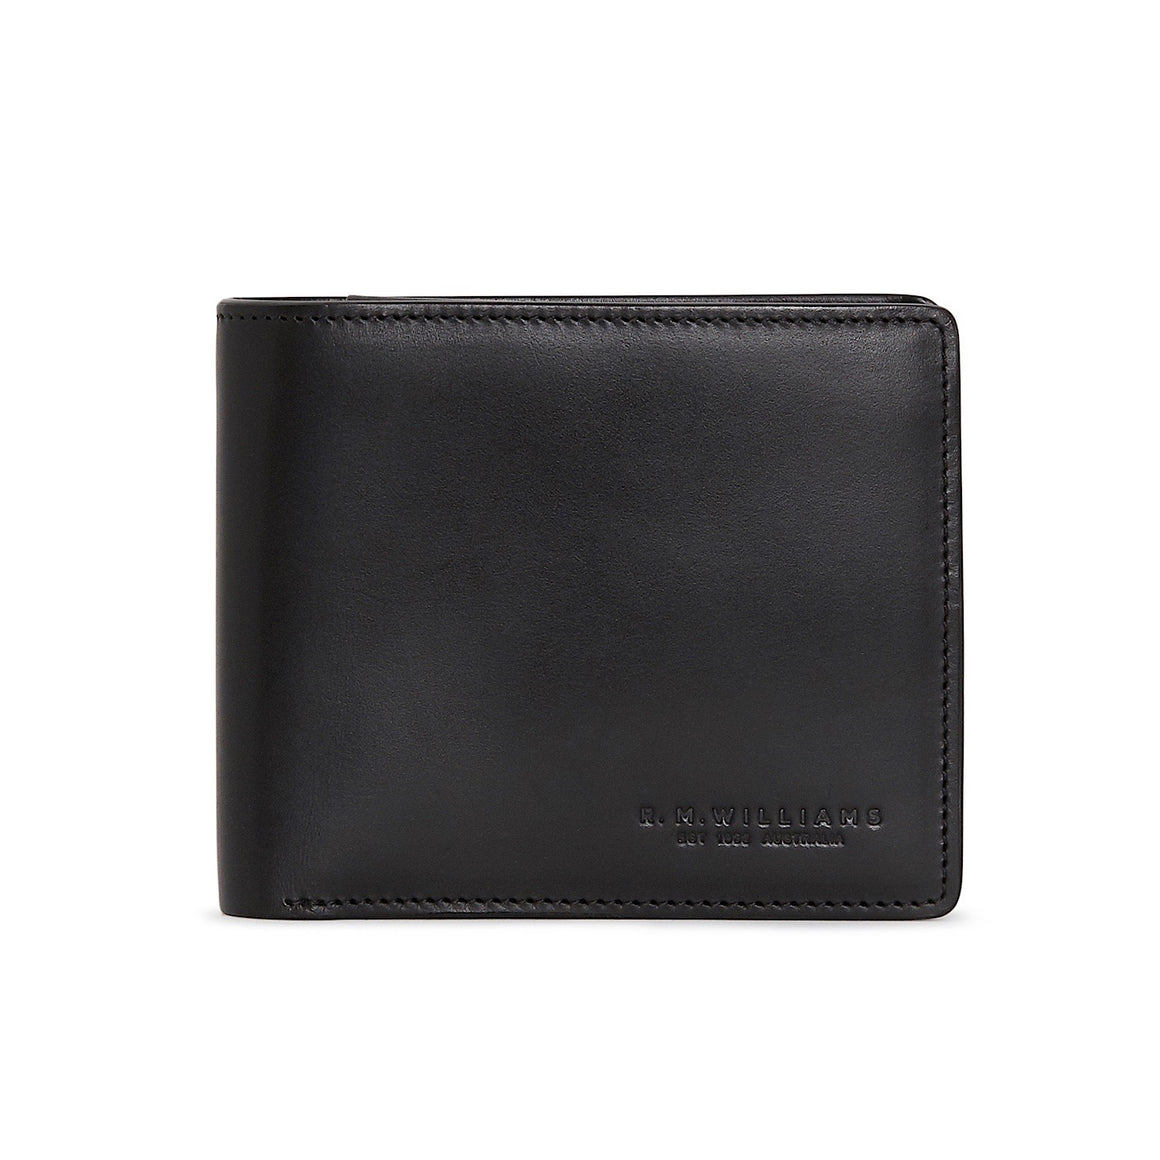 R.M.Williams City Black Wallet with Coin Pocket